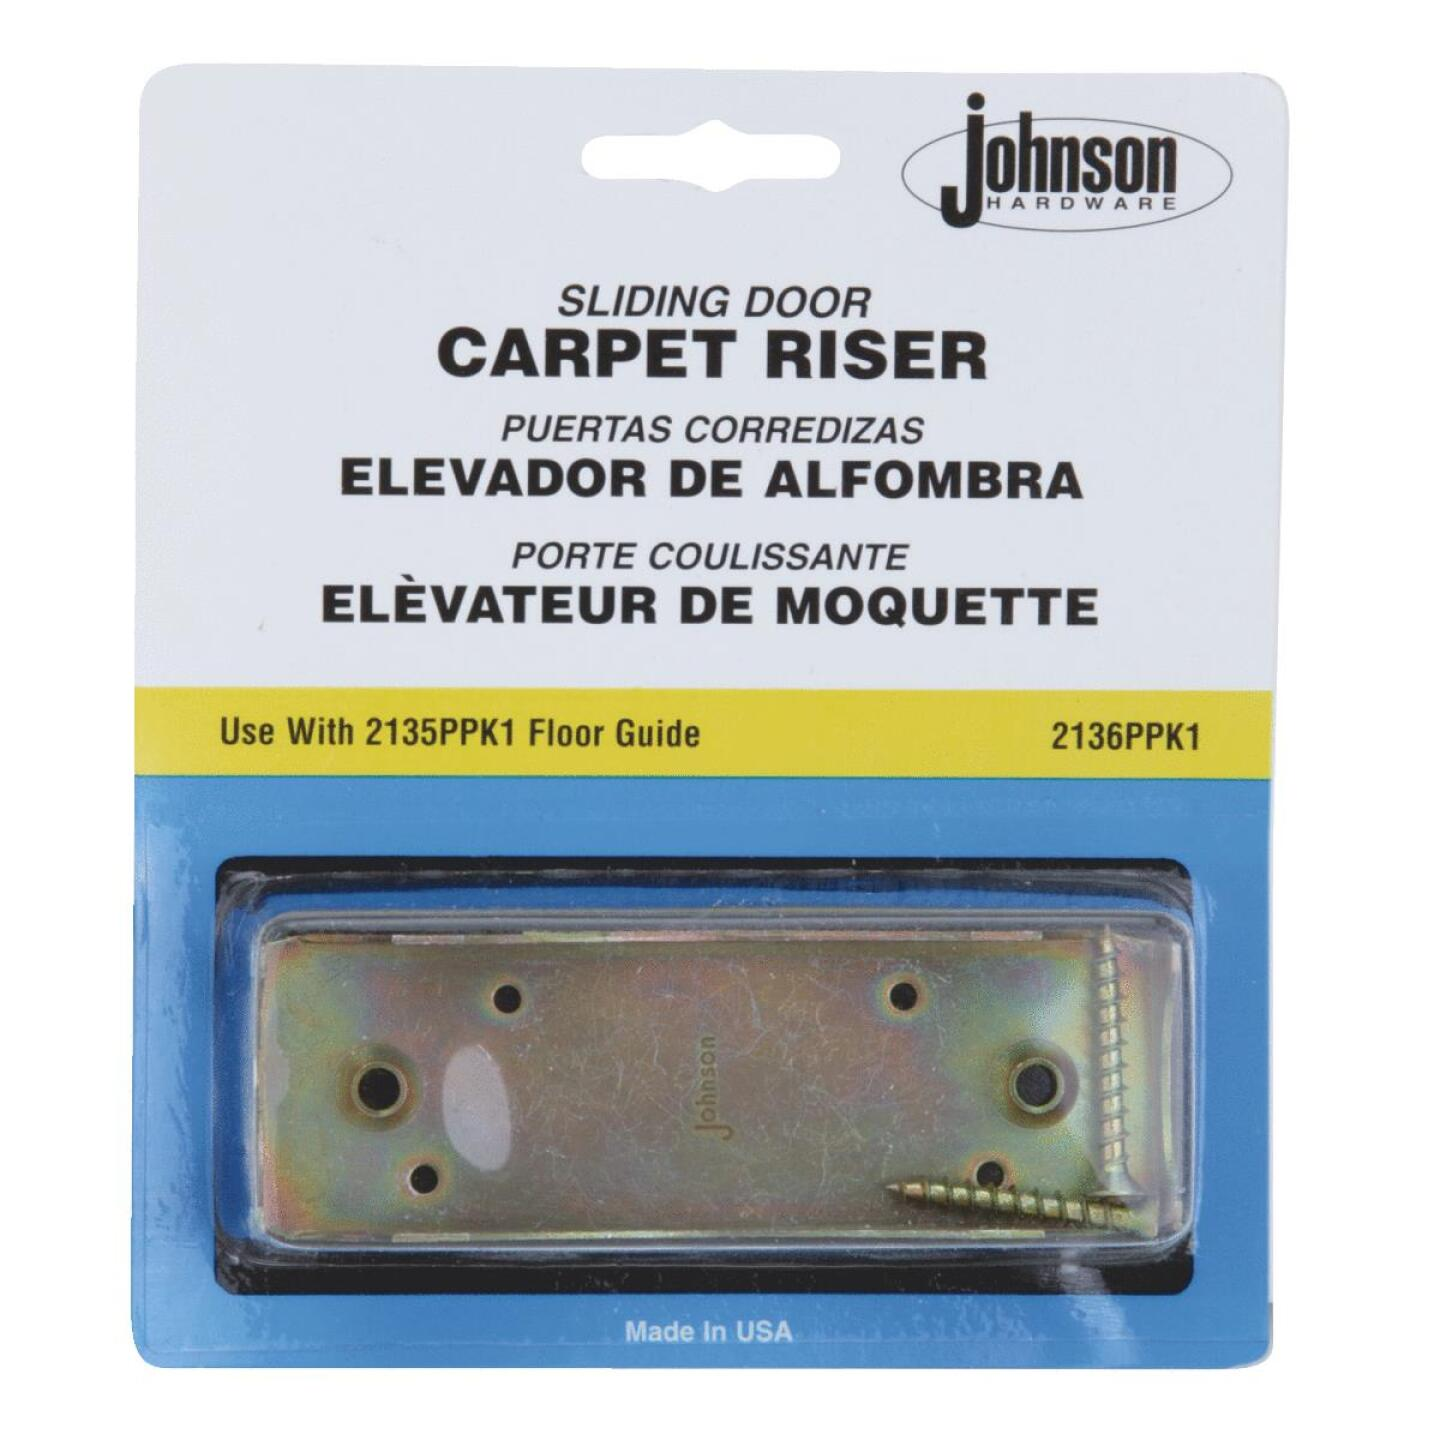 Johnson Hardware Carpet Riser Image 1